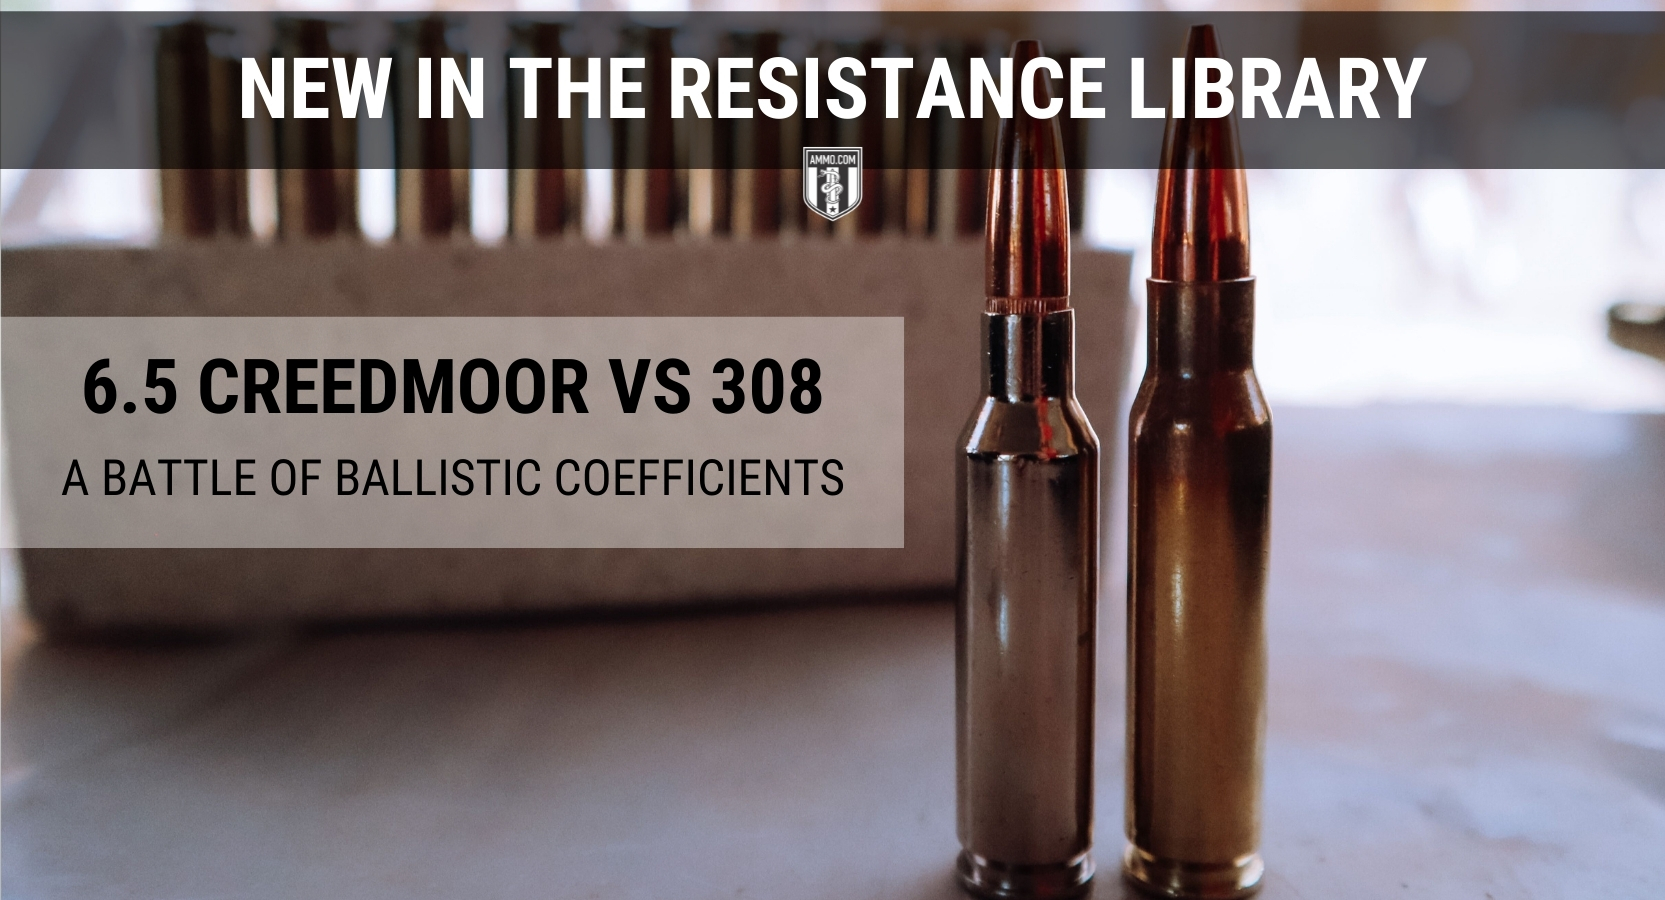 whats the difference between 65 Creedmoor vs 308 Winchester